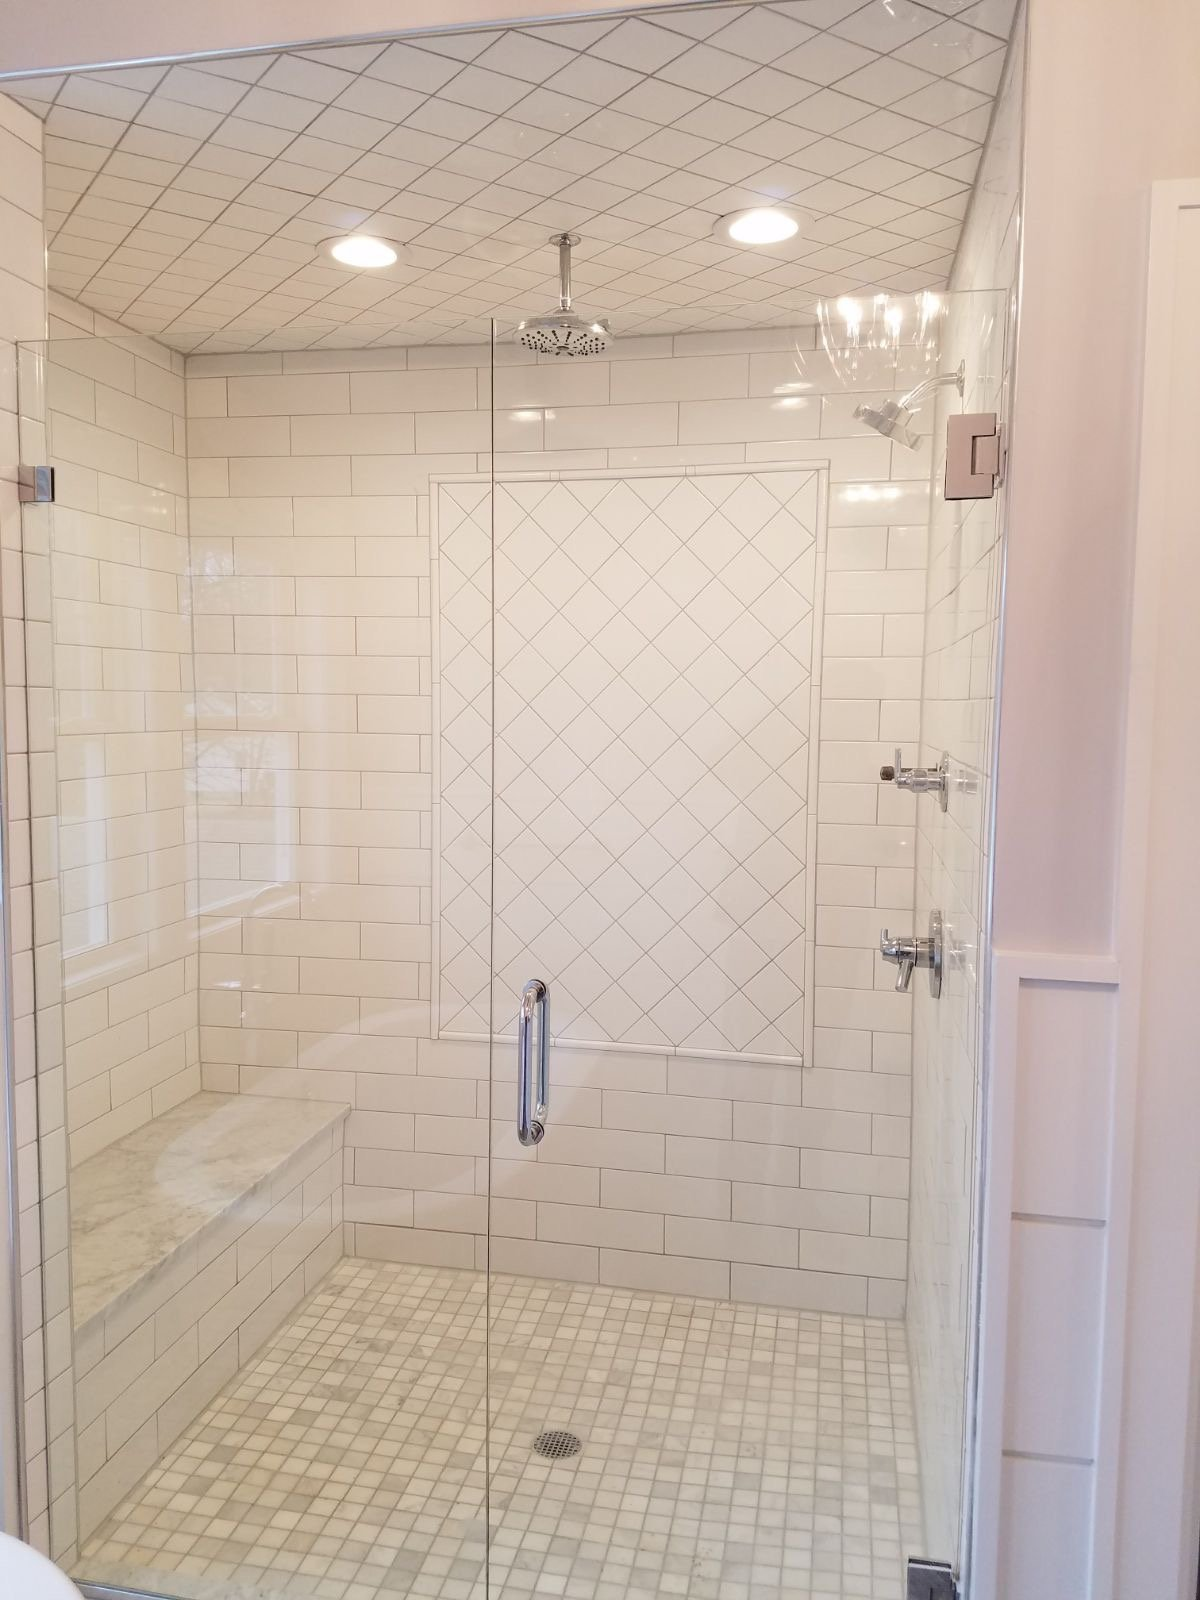 Bathroom Remodeling Fairfield Ct bathroom remodeling | bathroom renovation | wilton, ct